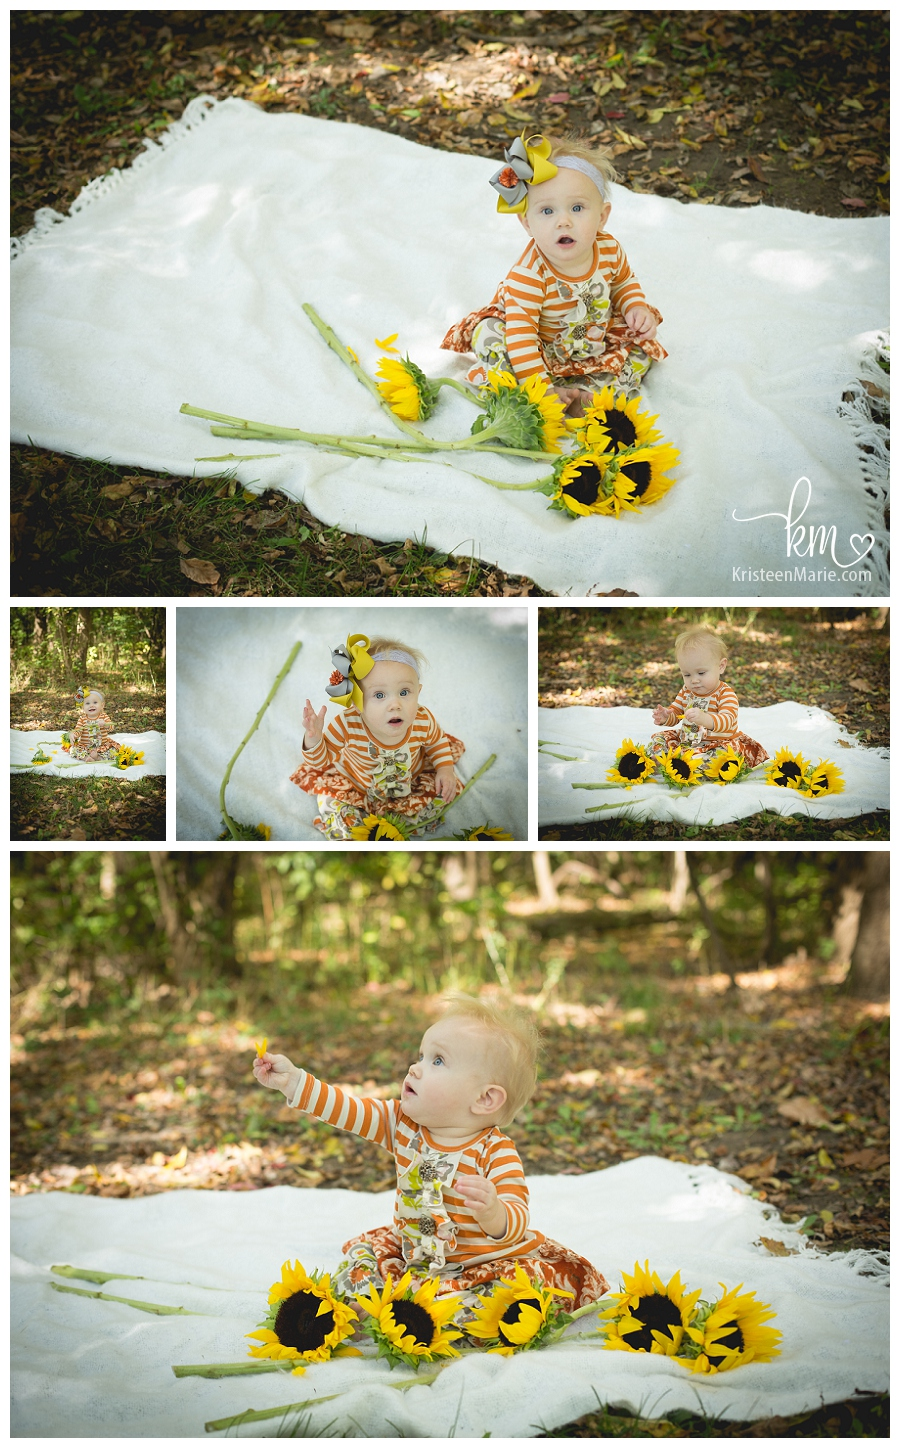 child with Sunflowers - Fall Picture